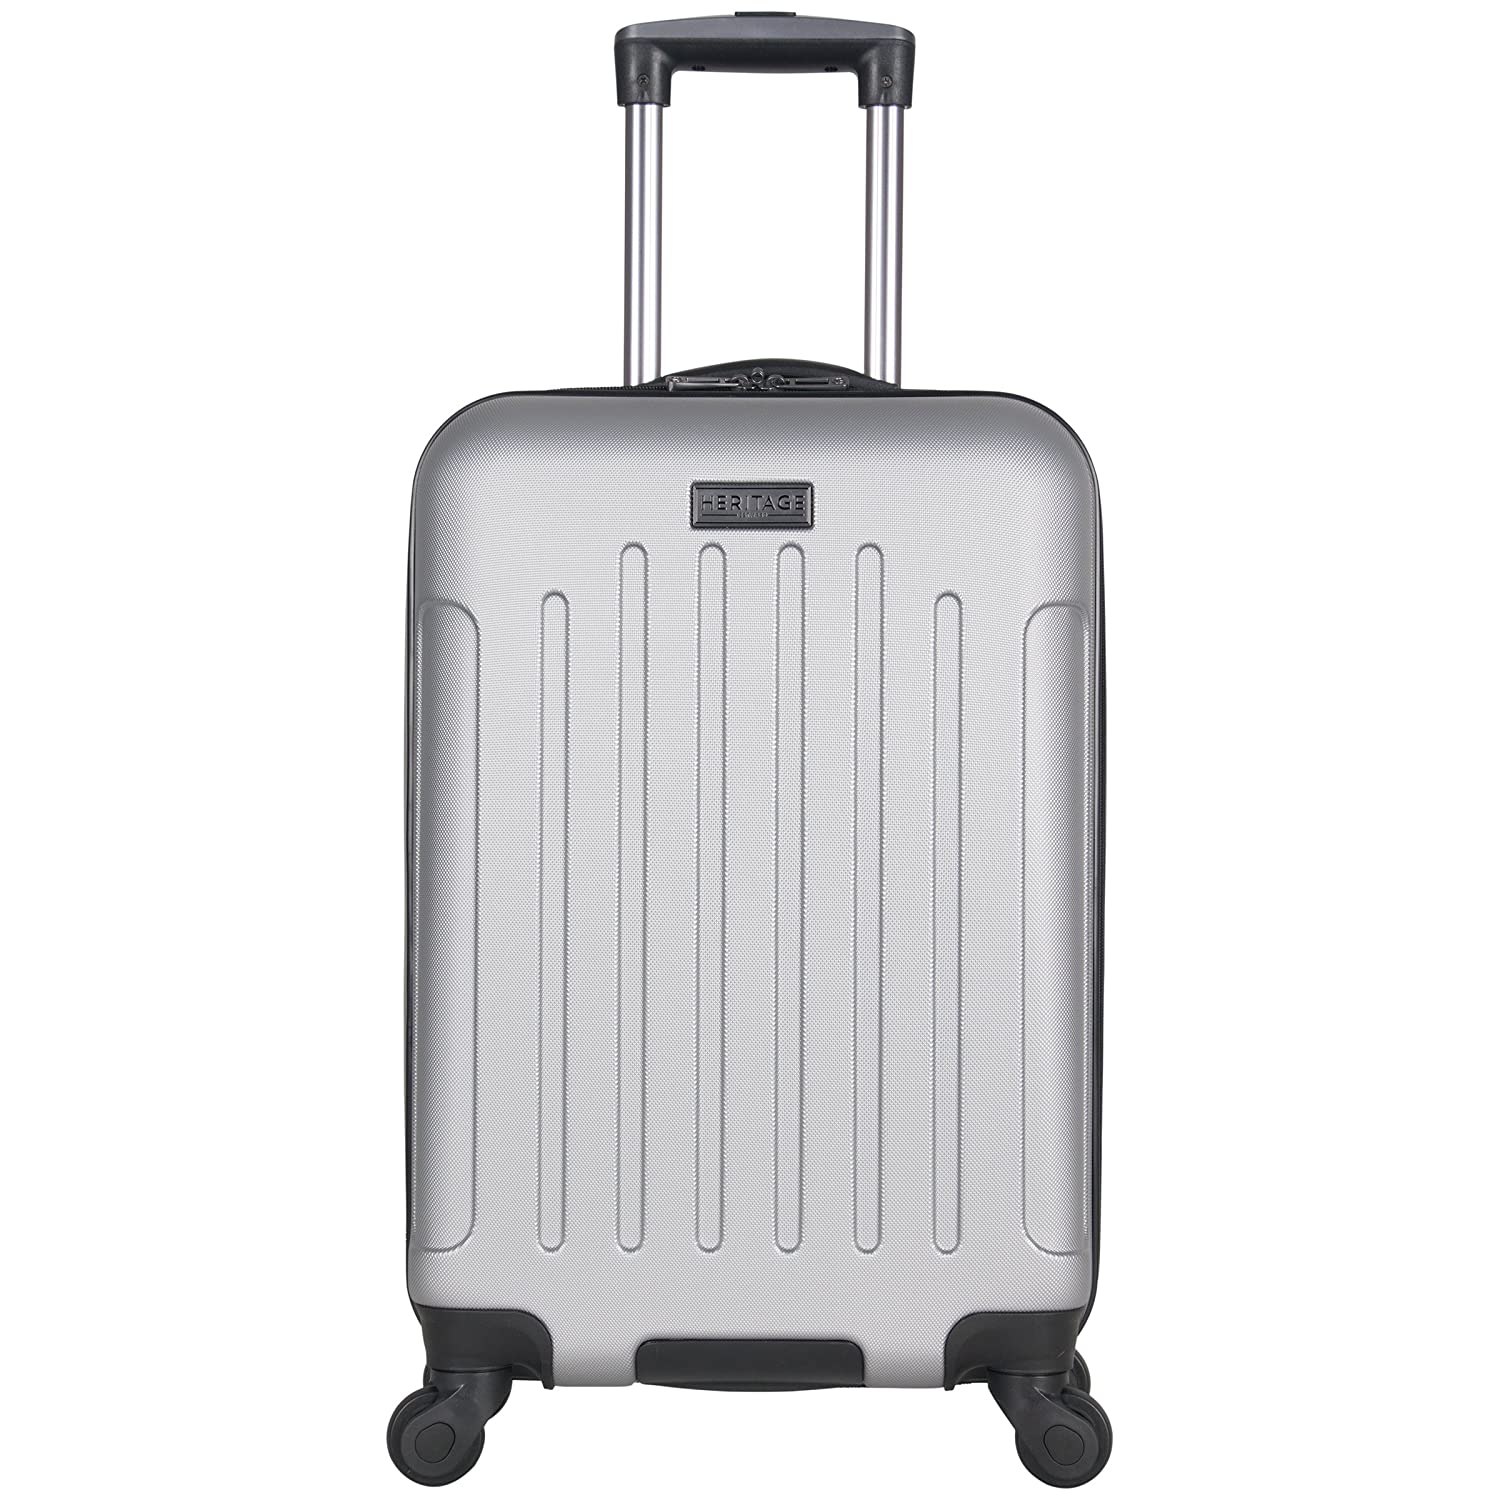 Heritage Travelware Lincoln Park 20 Hardside 4-Wheel Spinner Carry-on Luggage, Charcoal 882568